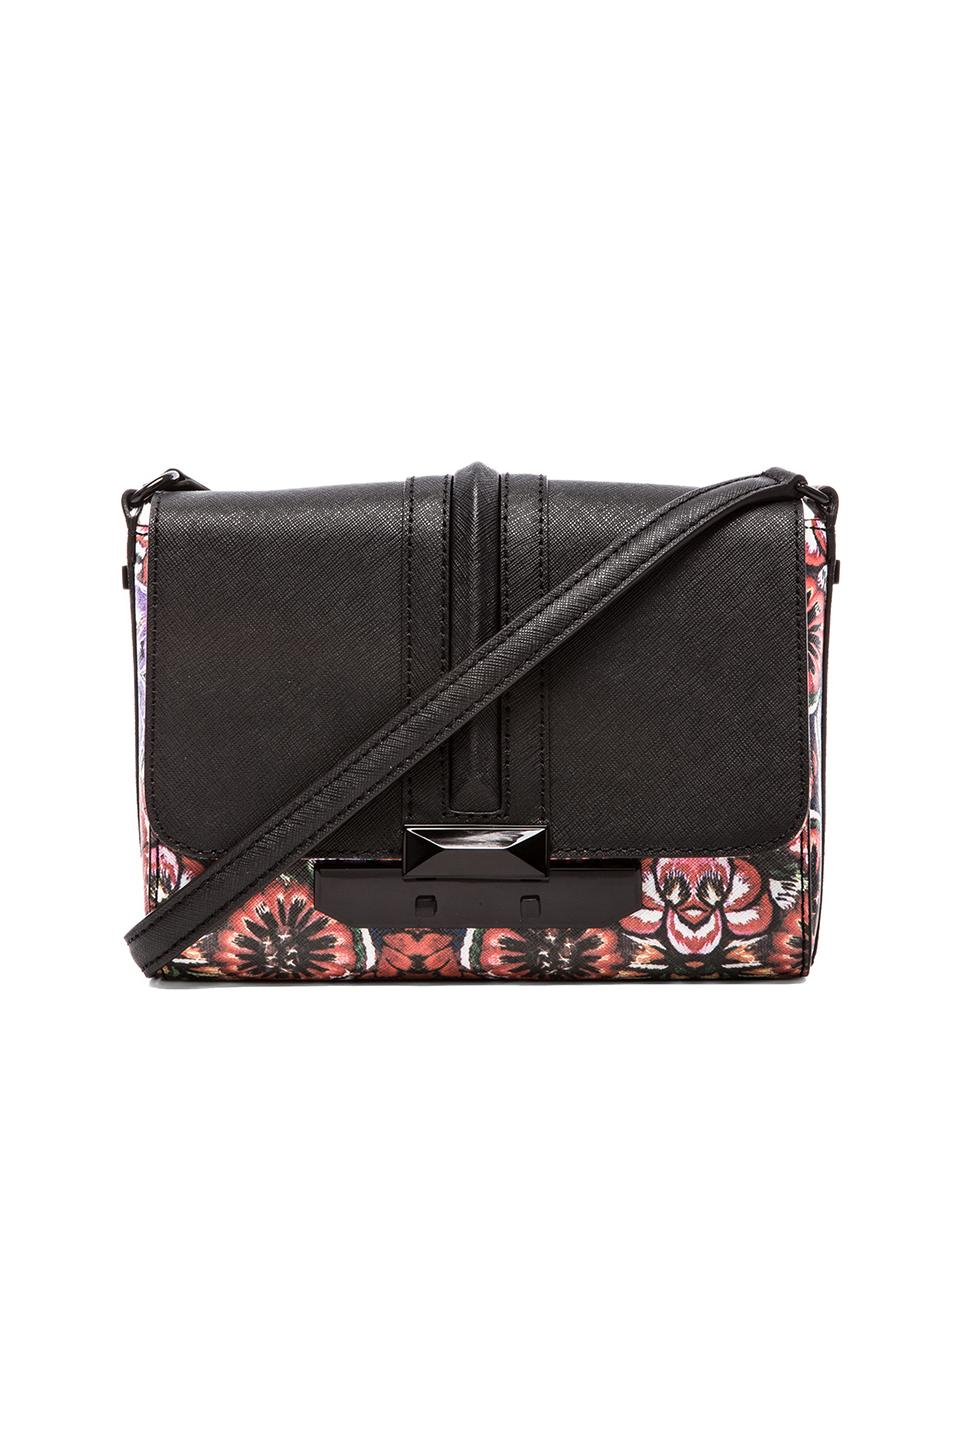 Rebecca Minkoff Leo Crossbody in Mexi Flower Print